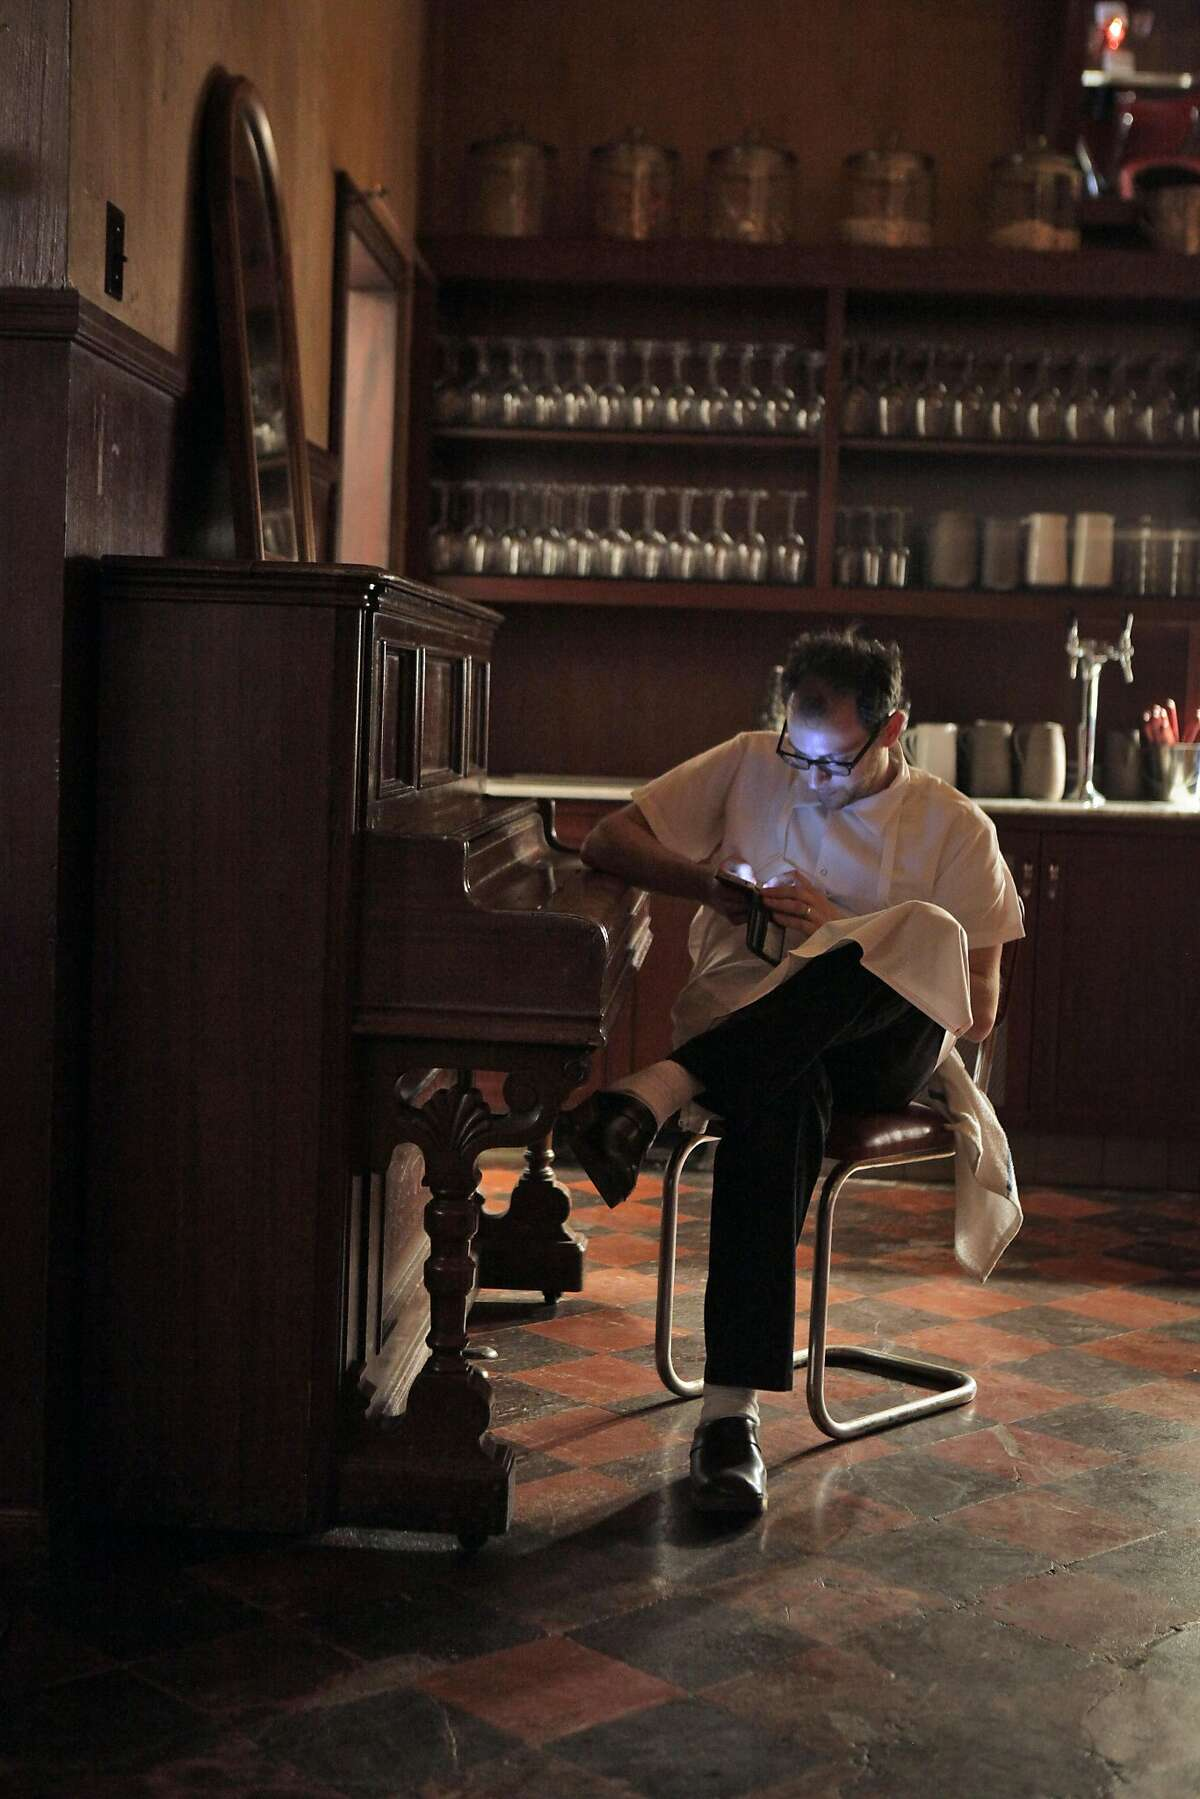 Head Chef Josh Even checks his phone on a break near the old piano at Tosca on Monday. San Francisco's legendary Tosca is set to reopen this week under new ownership, featuring a restaurant as well as the bar. April Bloomfield of Spotted Pig helms the dining, and Co-owner Ken Friedman hopes the changes will bring back regulars and a new crowd. The San Francisco, Calif., mainstay is seen here on Monday, October 7, 2013.